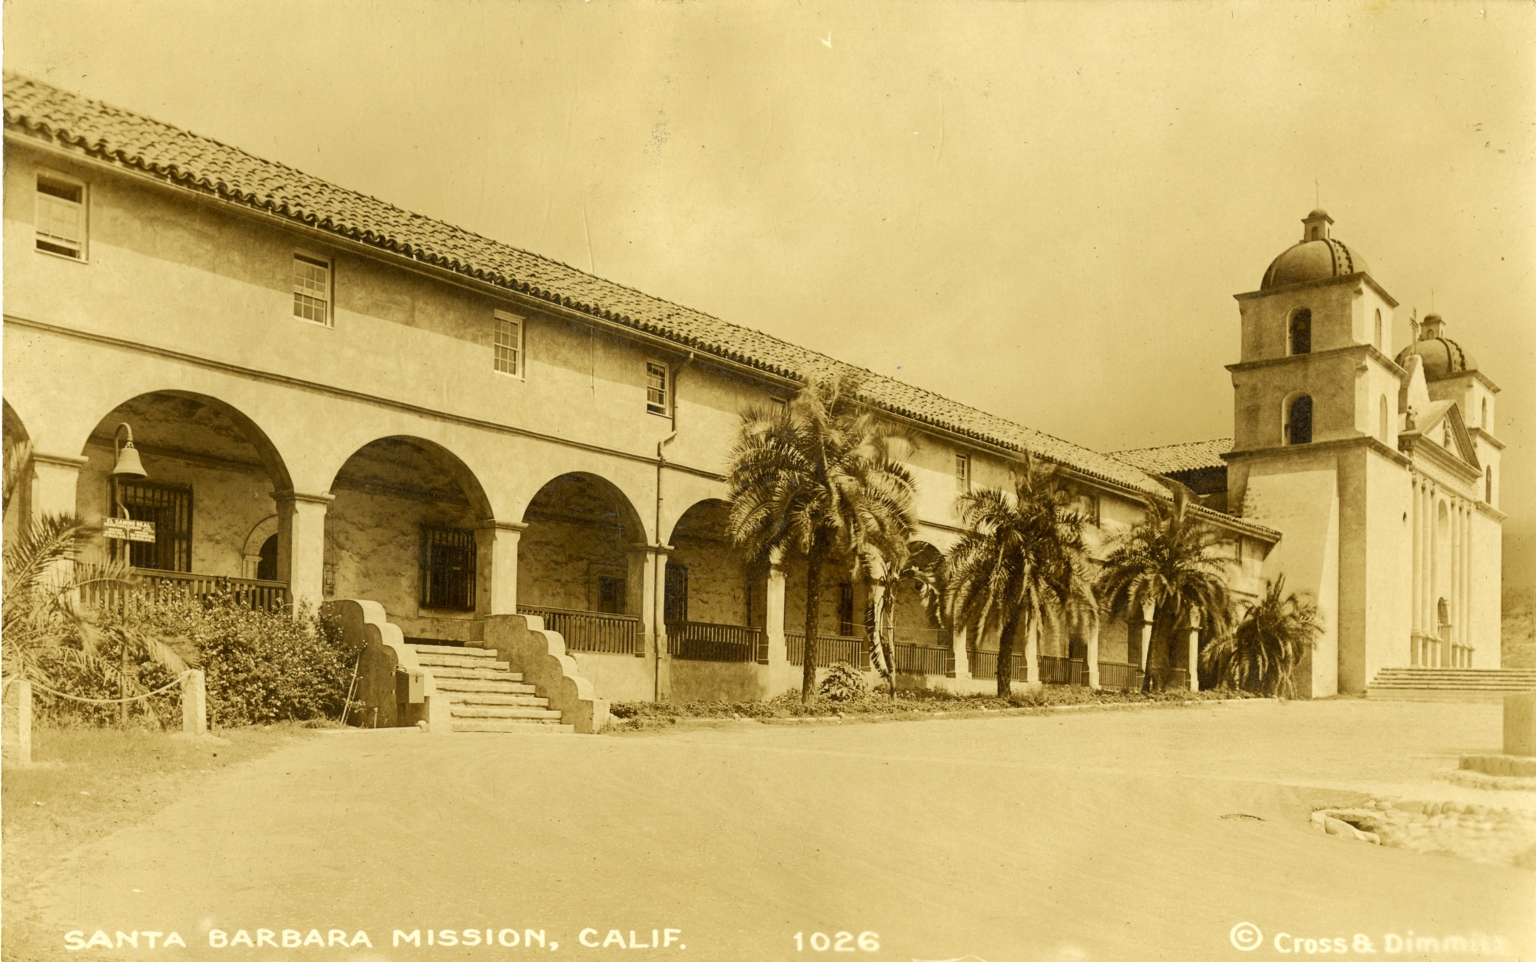 Santa Barbara Mission Before 1925 Earthquake